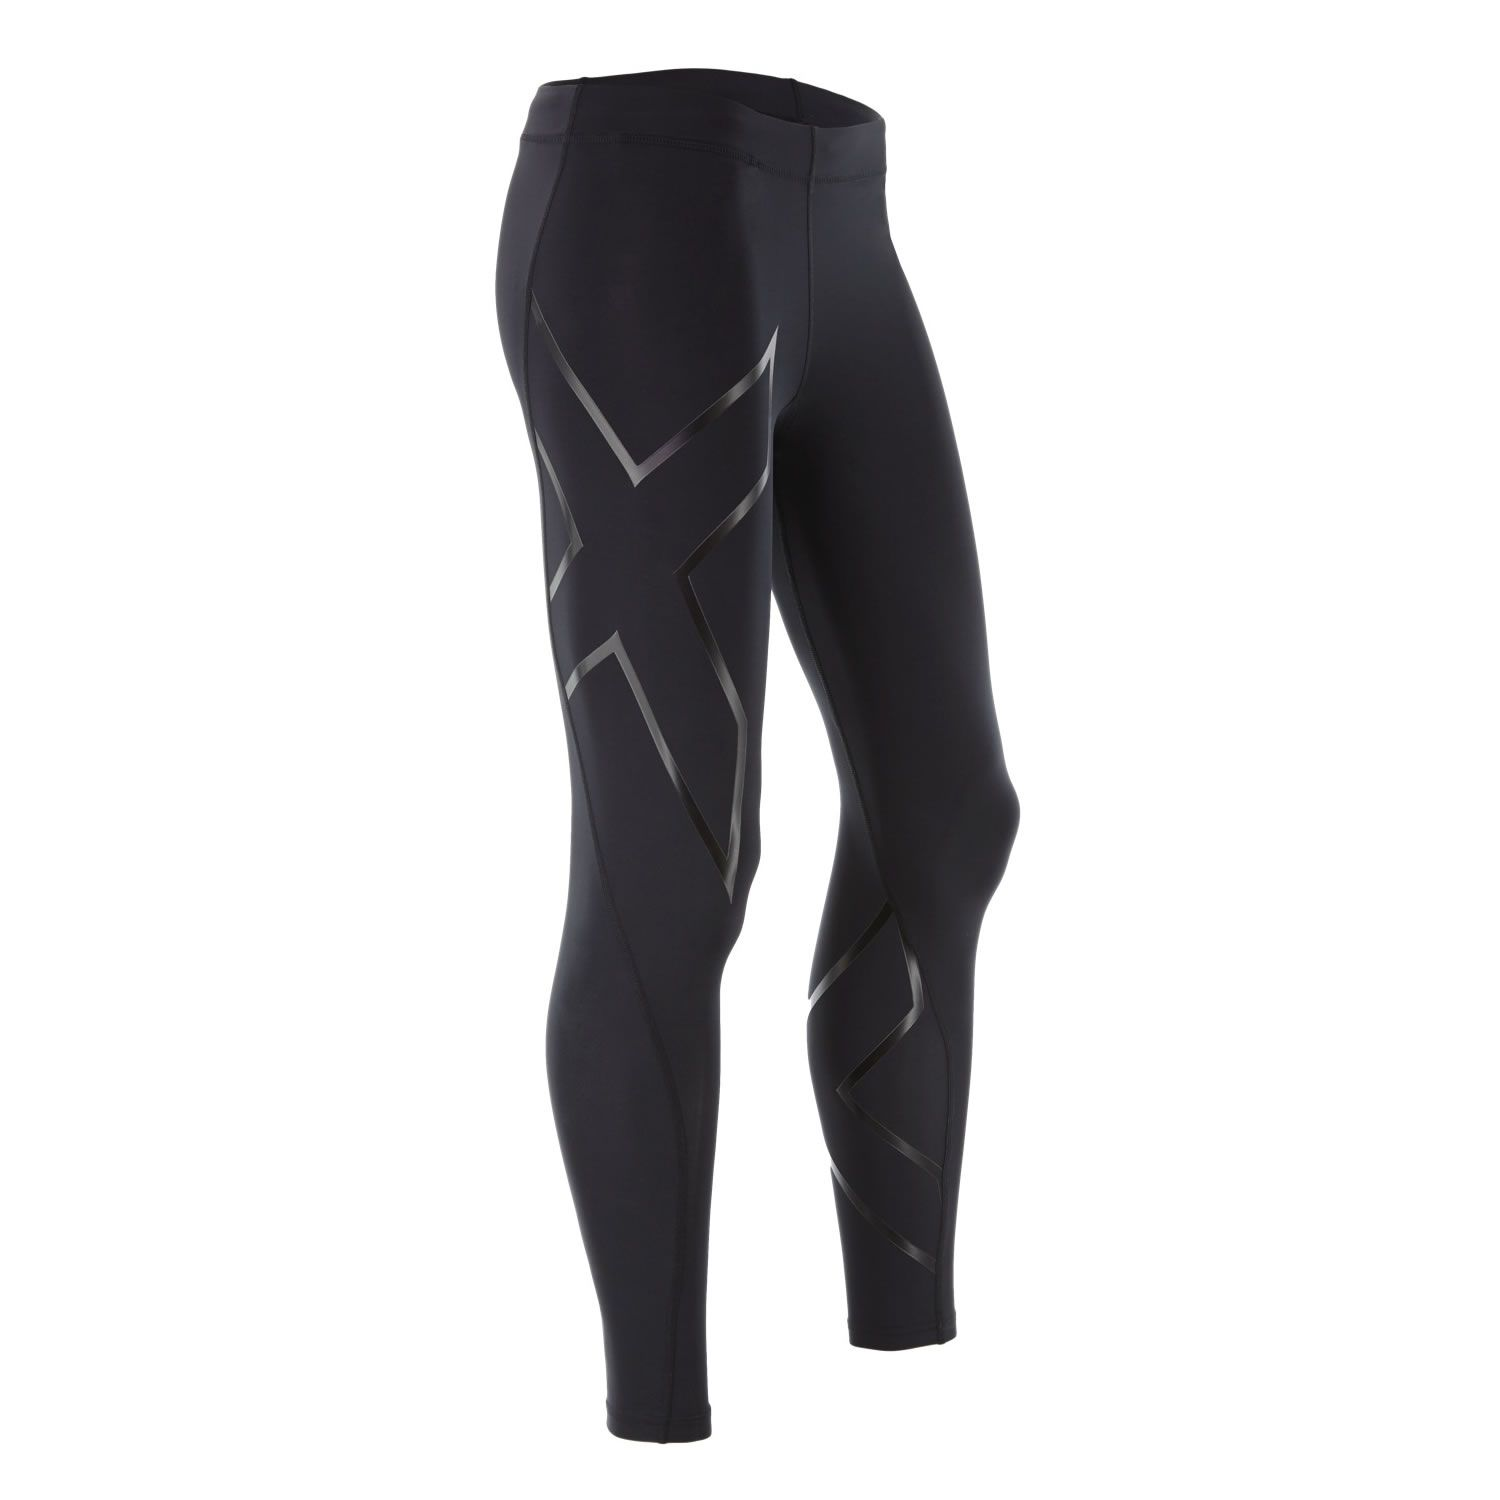 PANTALONI 2XU WOMEN COMPRESSION TIGHTS WA4173B BLK NRO.jpg